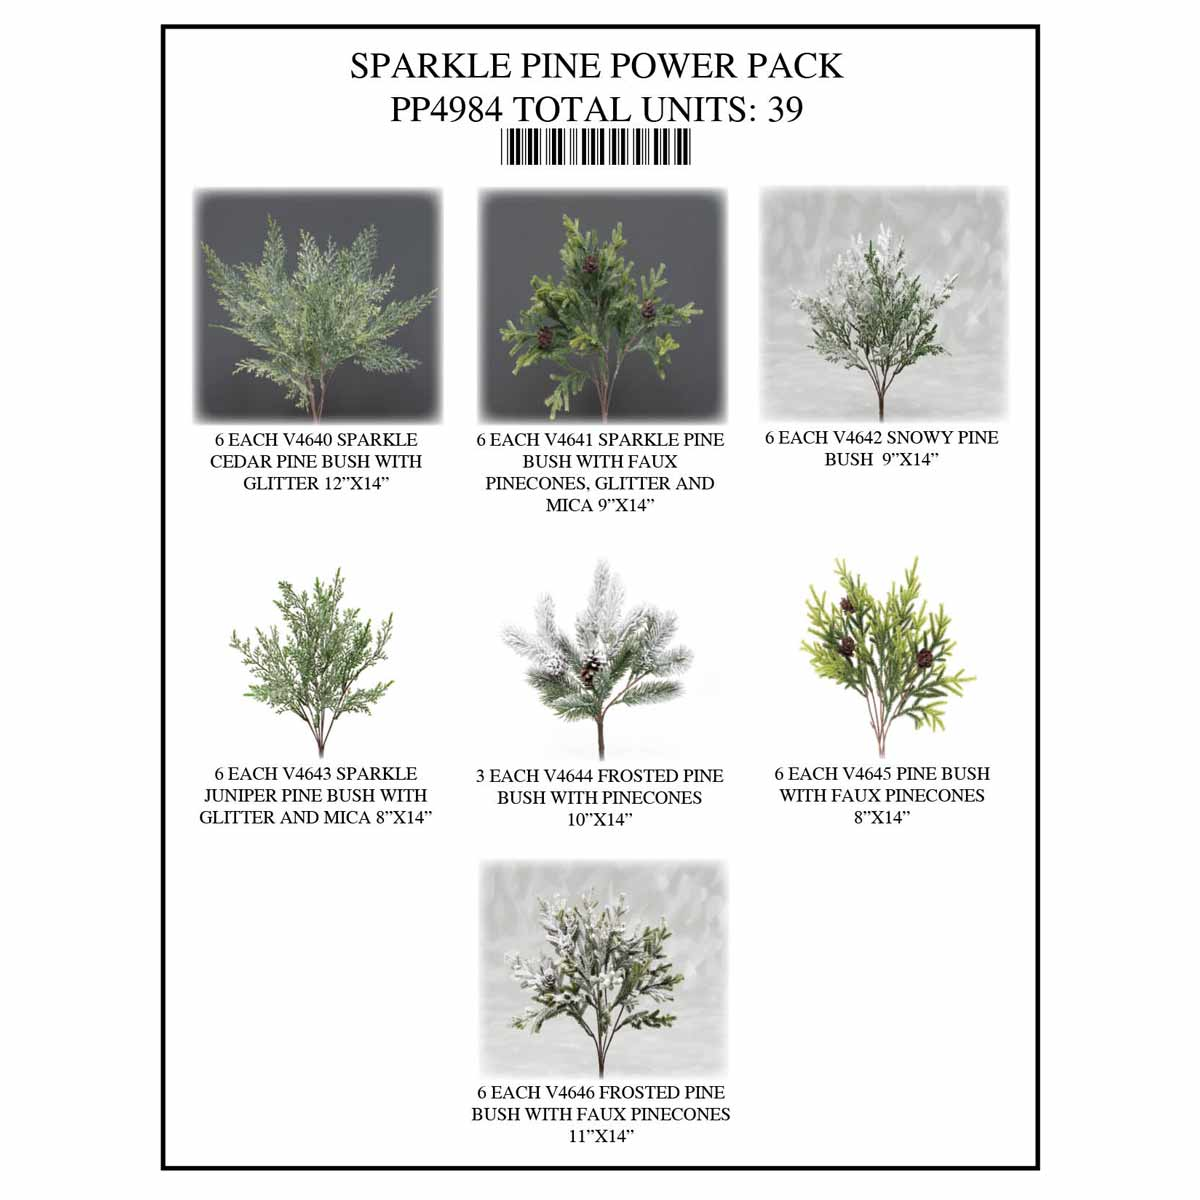 PINE SPARKLE POWER PACK 39 UNITS